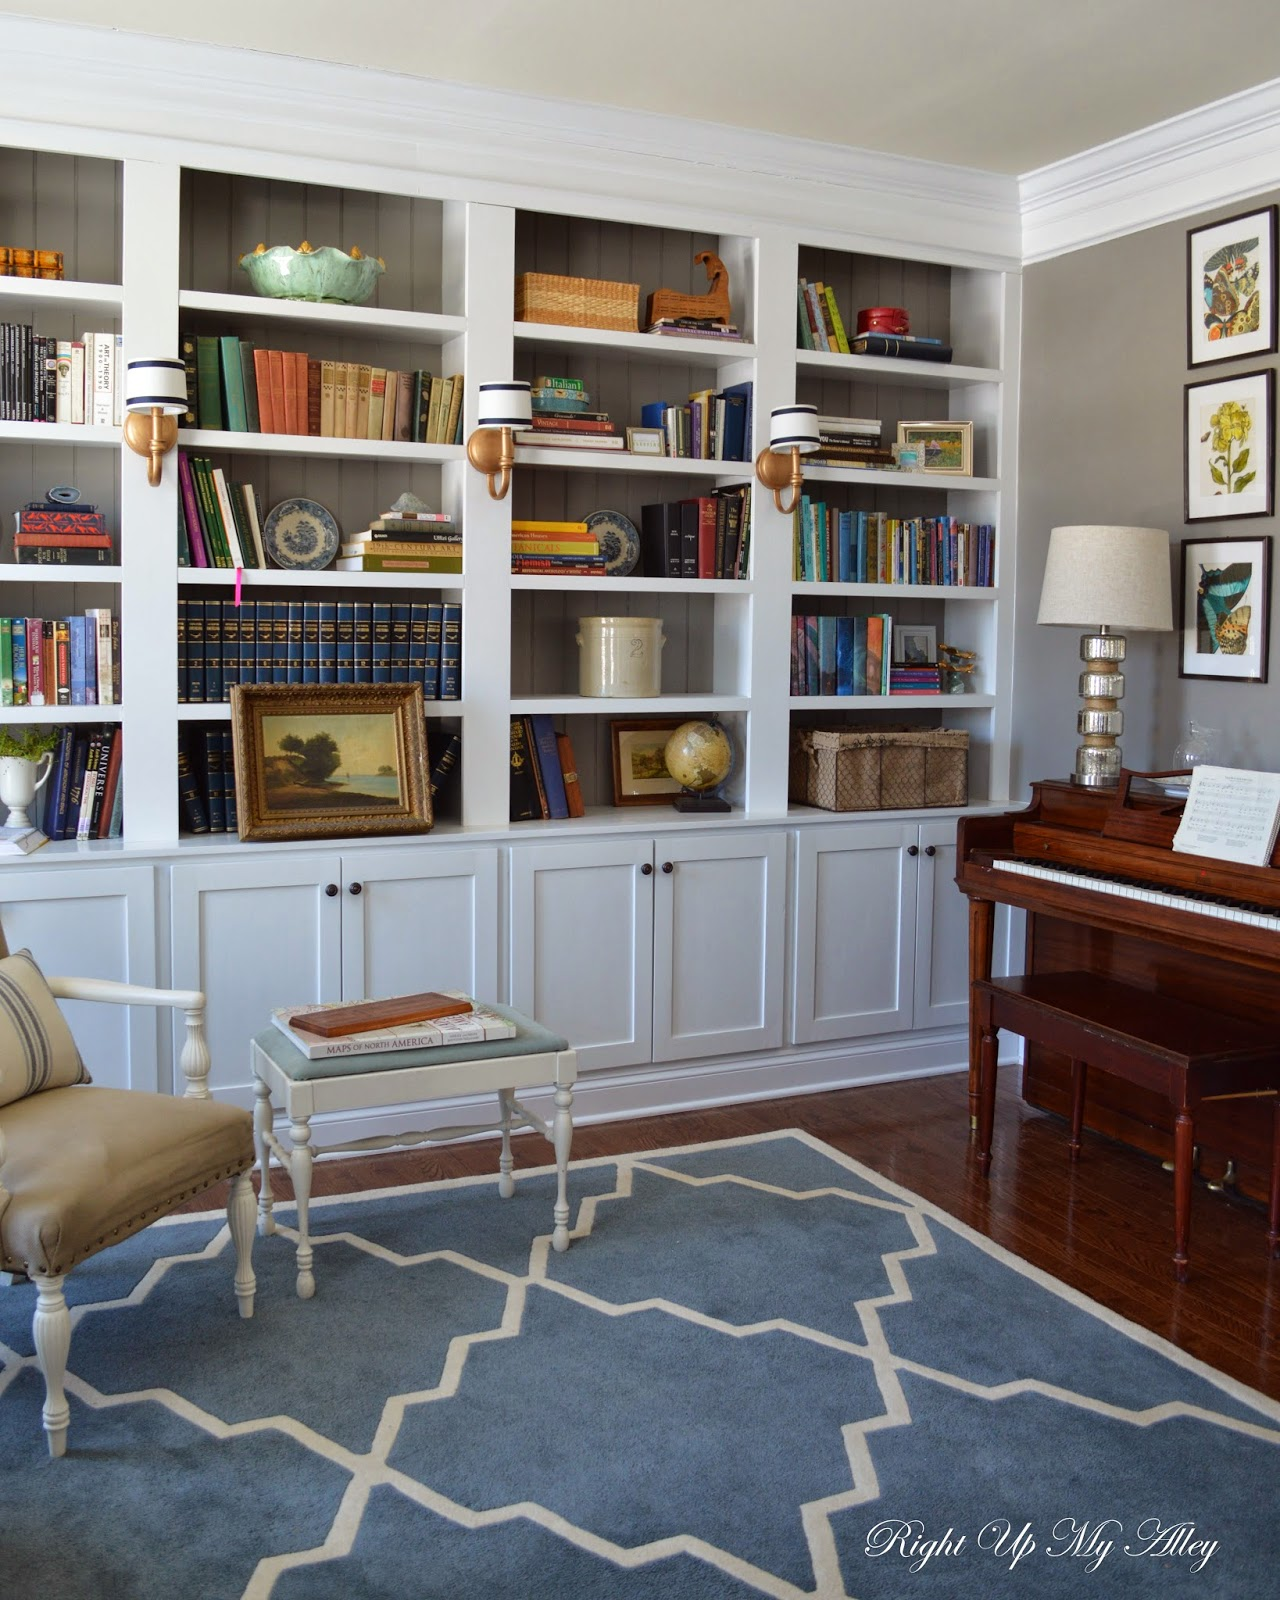 Built In Bookshelve: Right Up My Alley: Simple Tips: Rub N' Buff Lighting